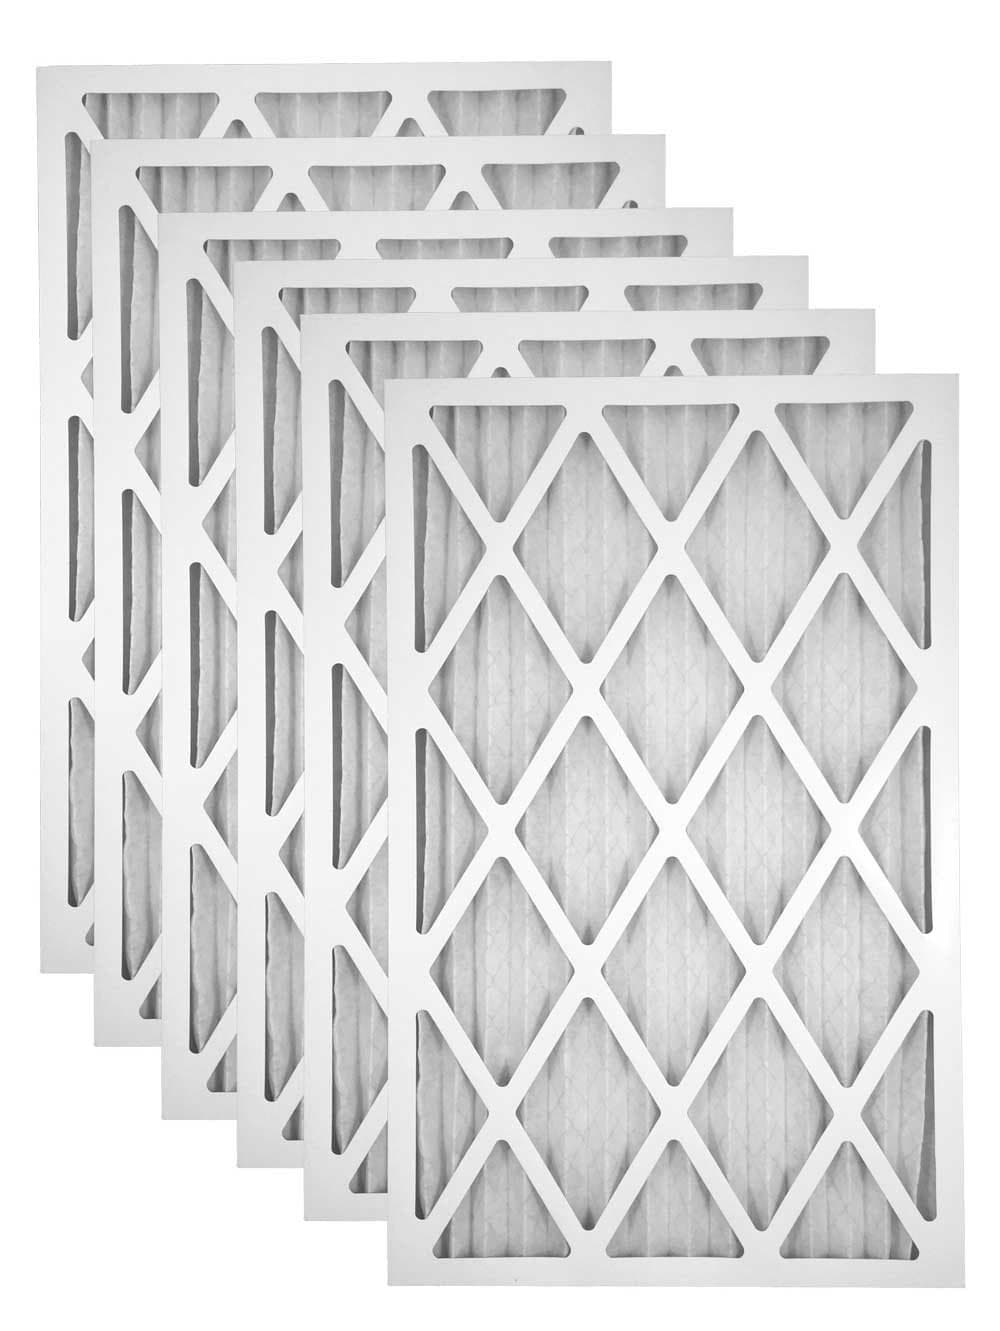 18x30x1 Merv 11 Pleated AC Furnace Filter - Case of 6 by Atomic Filters